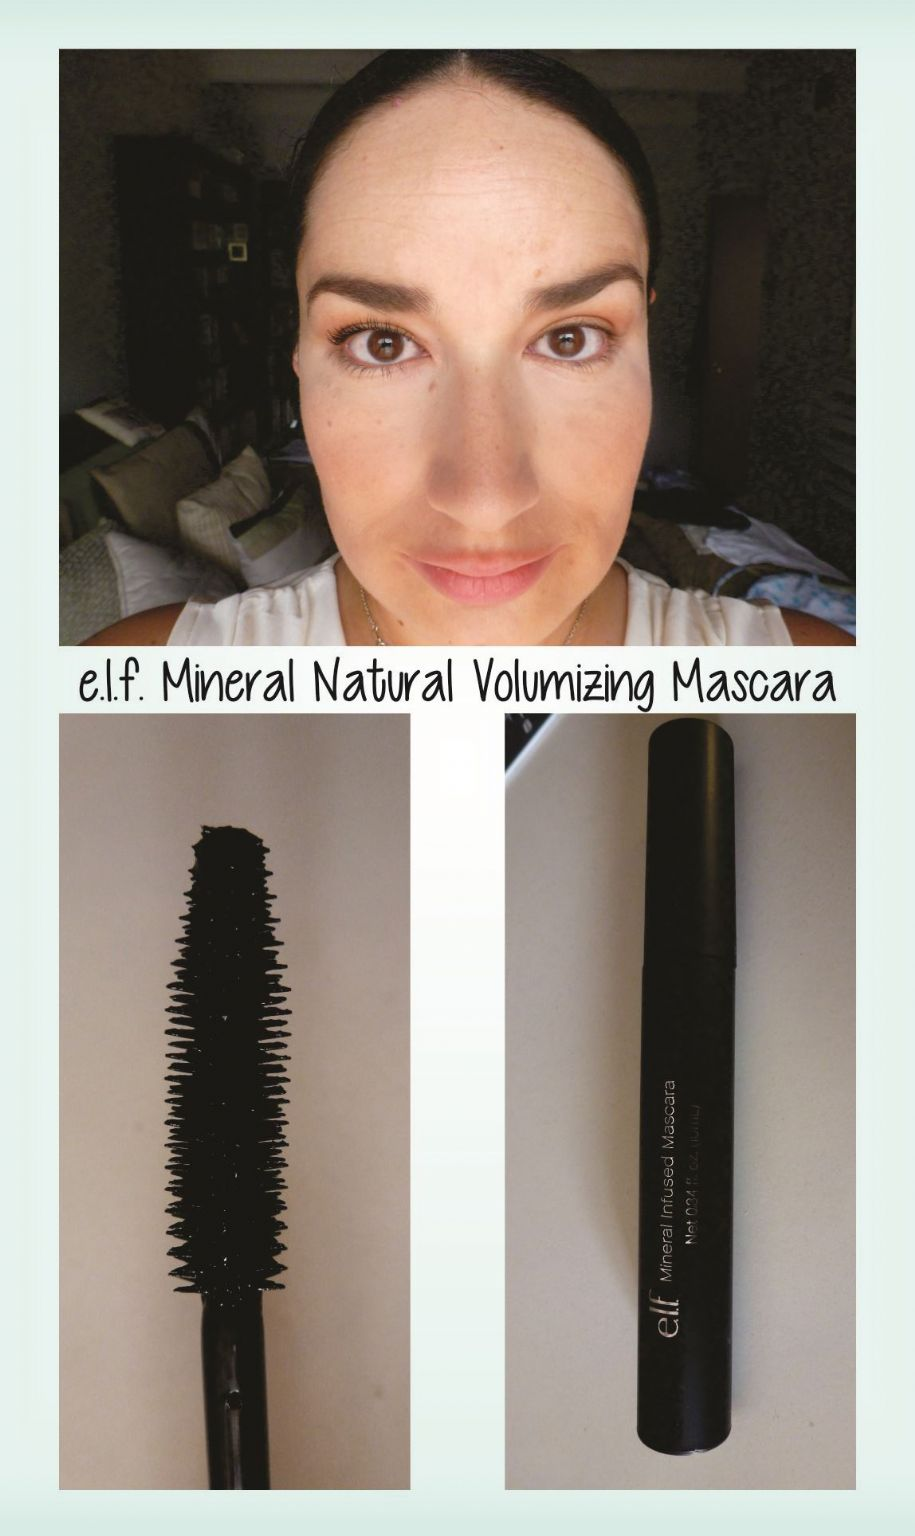 E.L.F. Studio Mineral Infused Mascara reviews, photos, ingredients ...